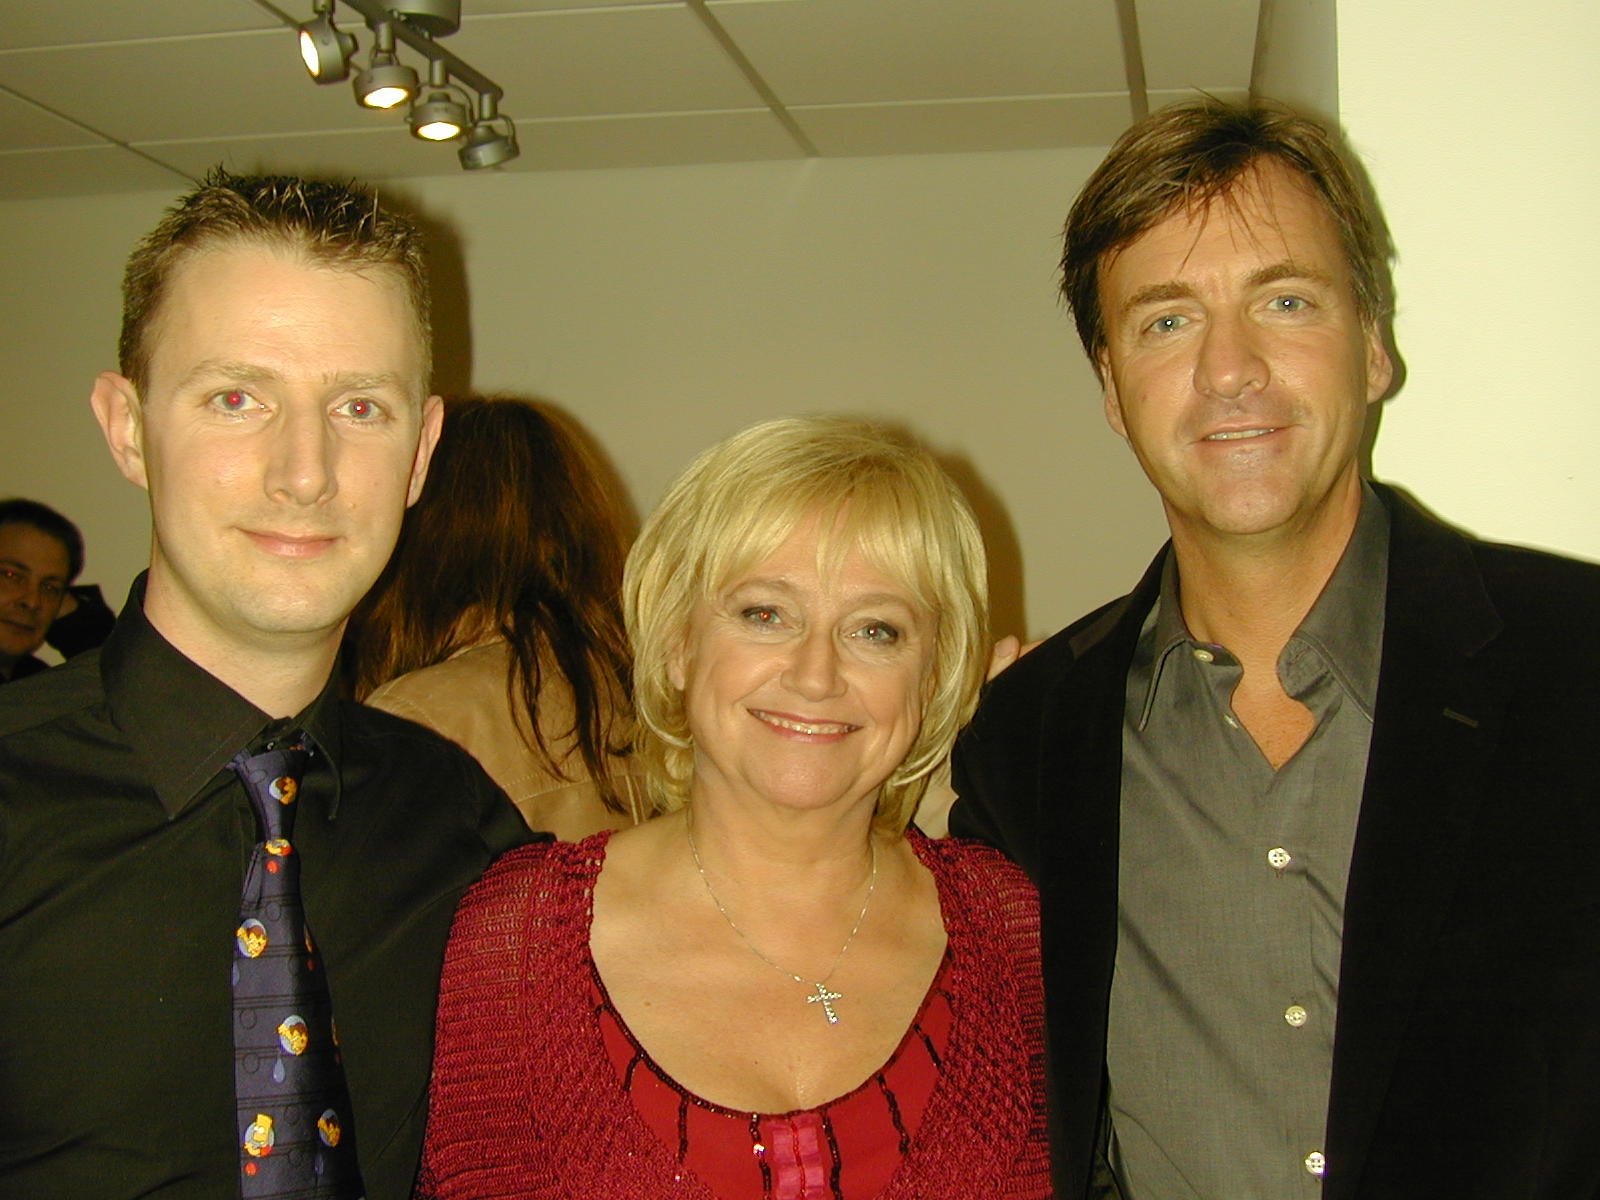 KernowPods meets Richard and Judy